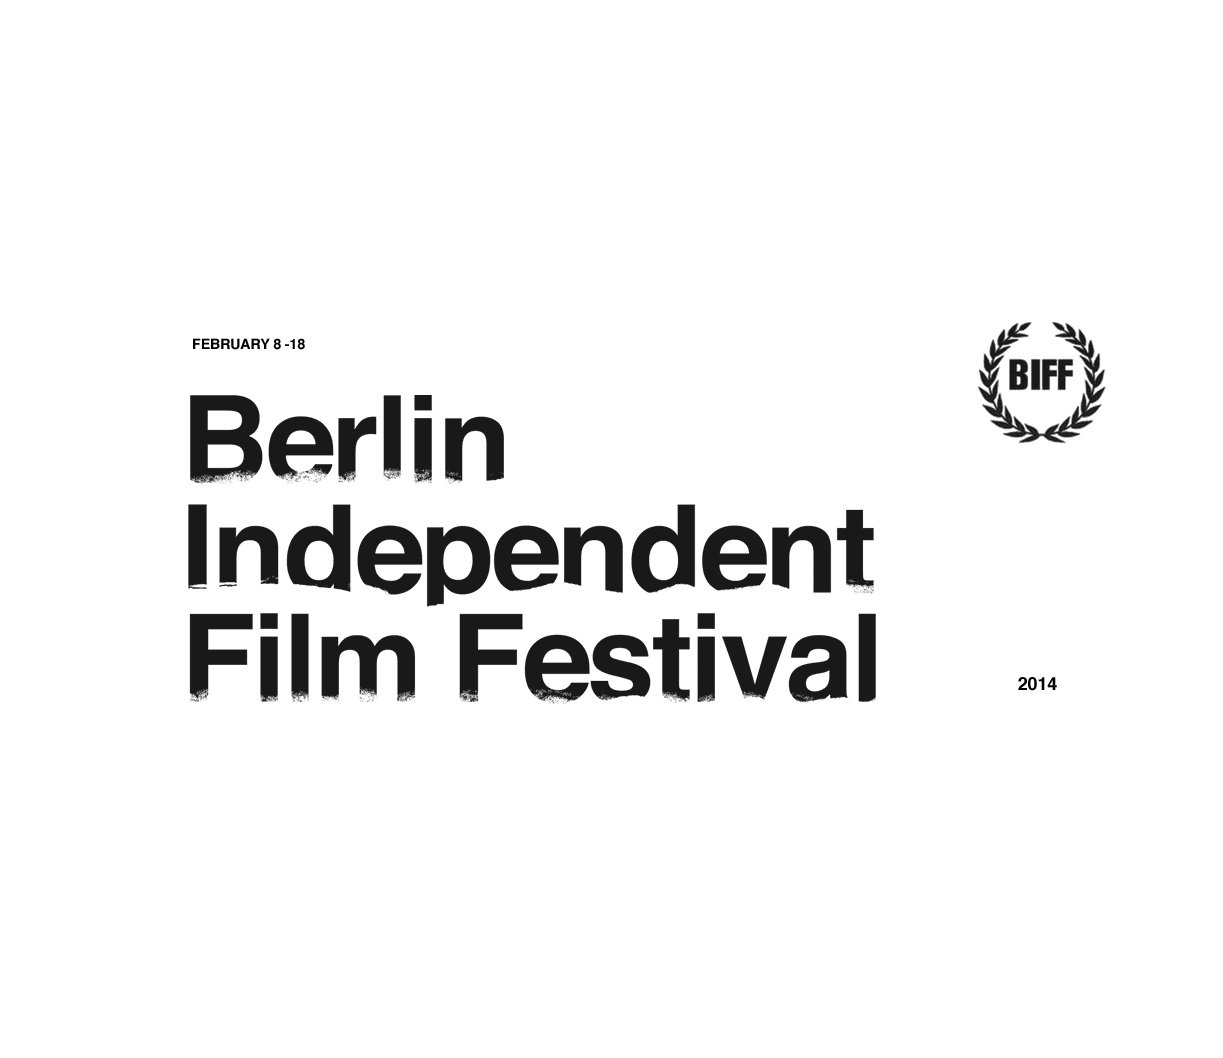 Art/Brand proposal for Berlin Independent Film Festival